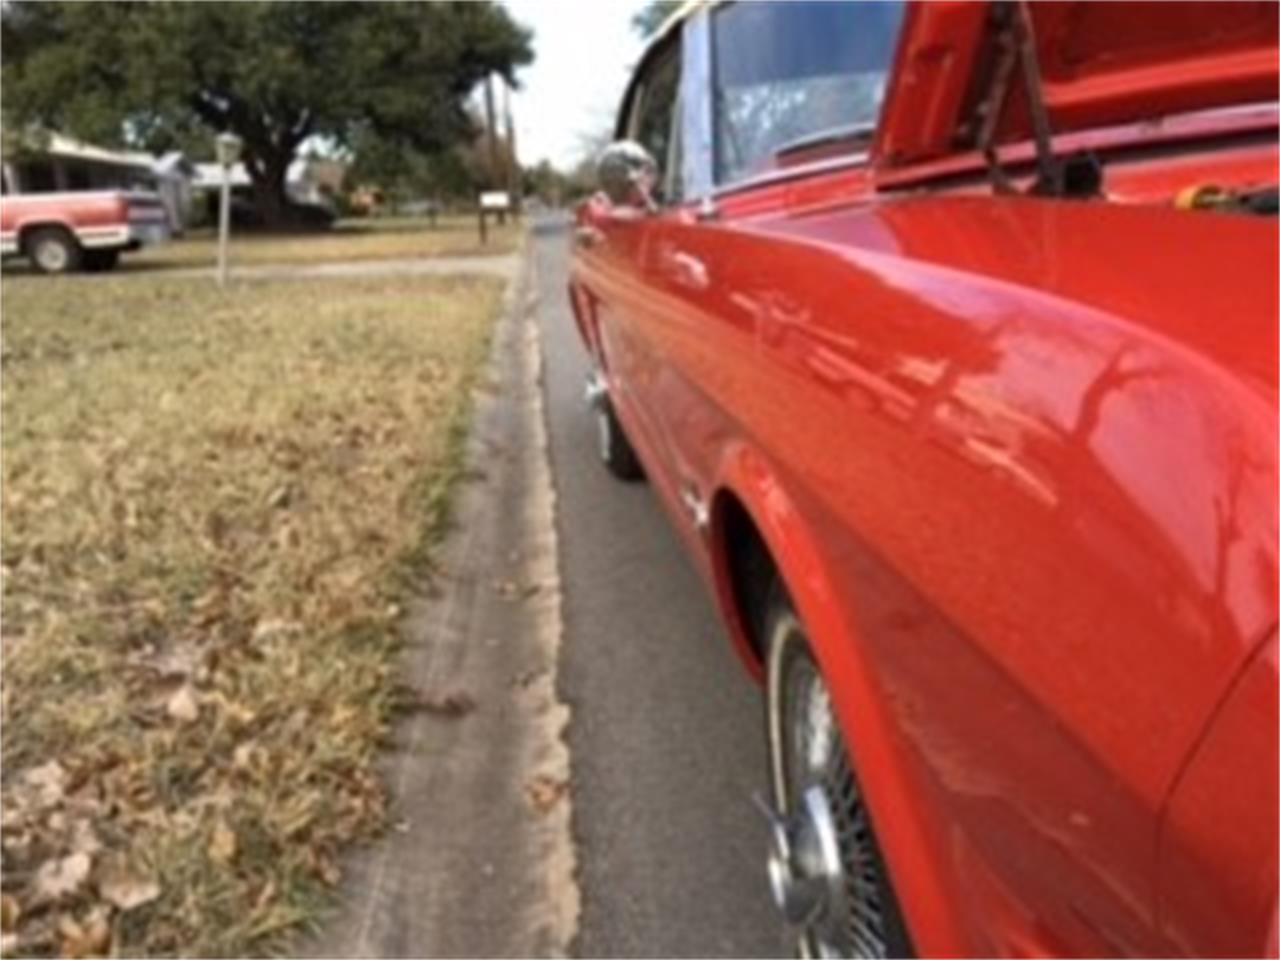 Large Picture of '64 Ford Mustang located in San Antonio Texas - $33,000.00 Offered by a Private Seller - LD93